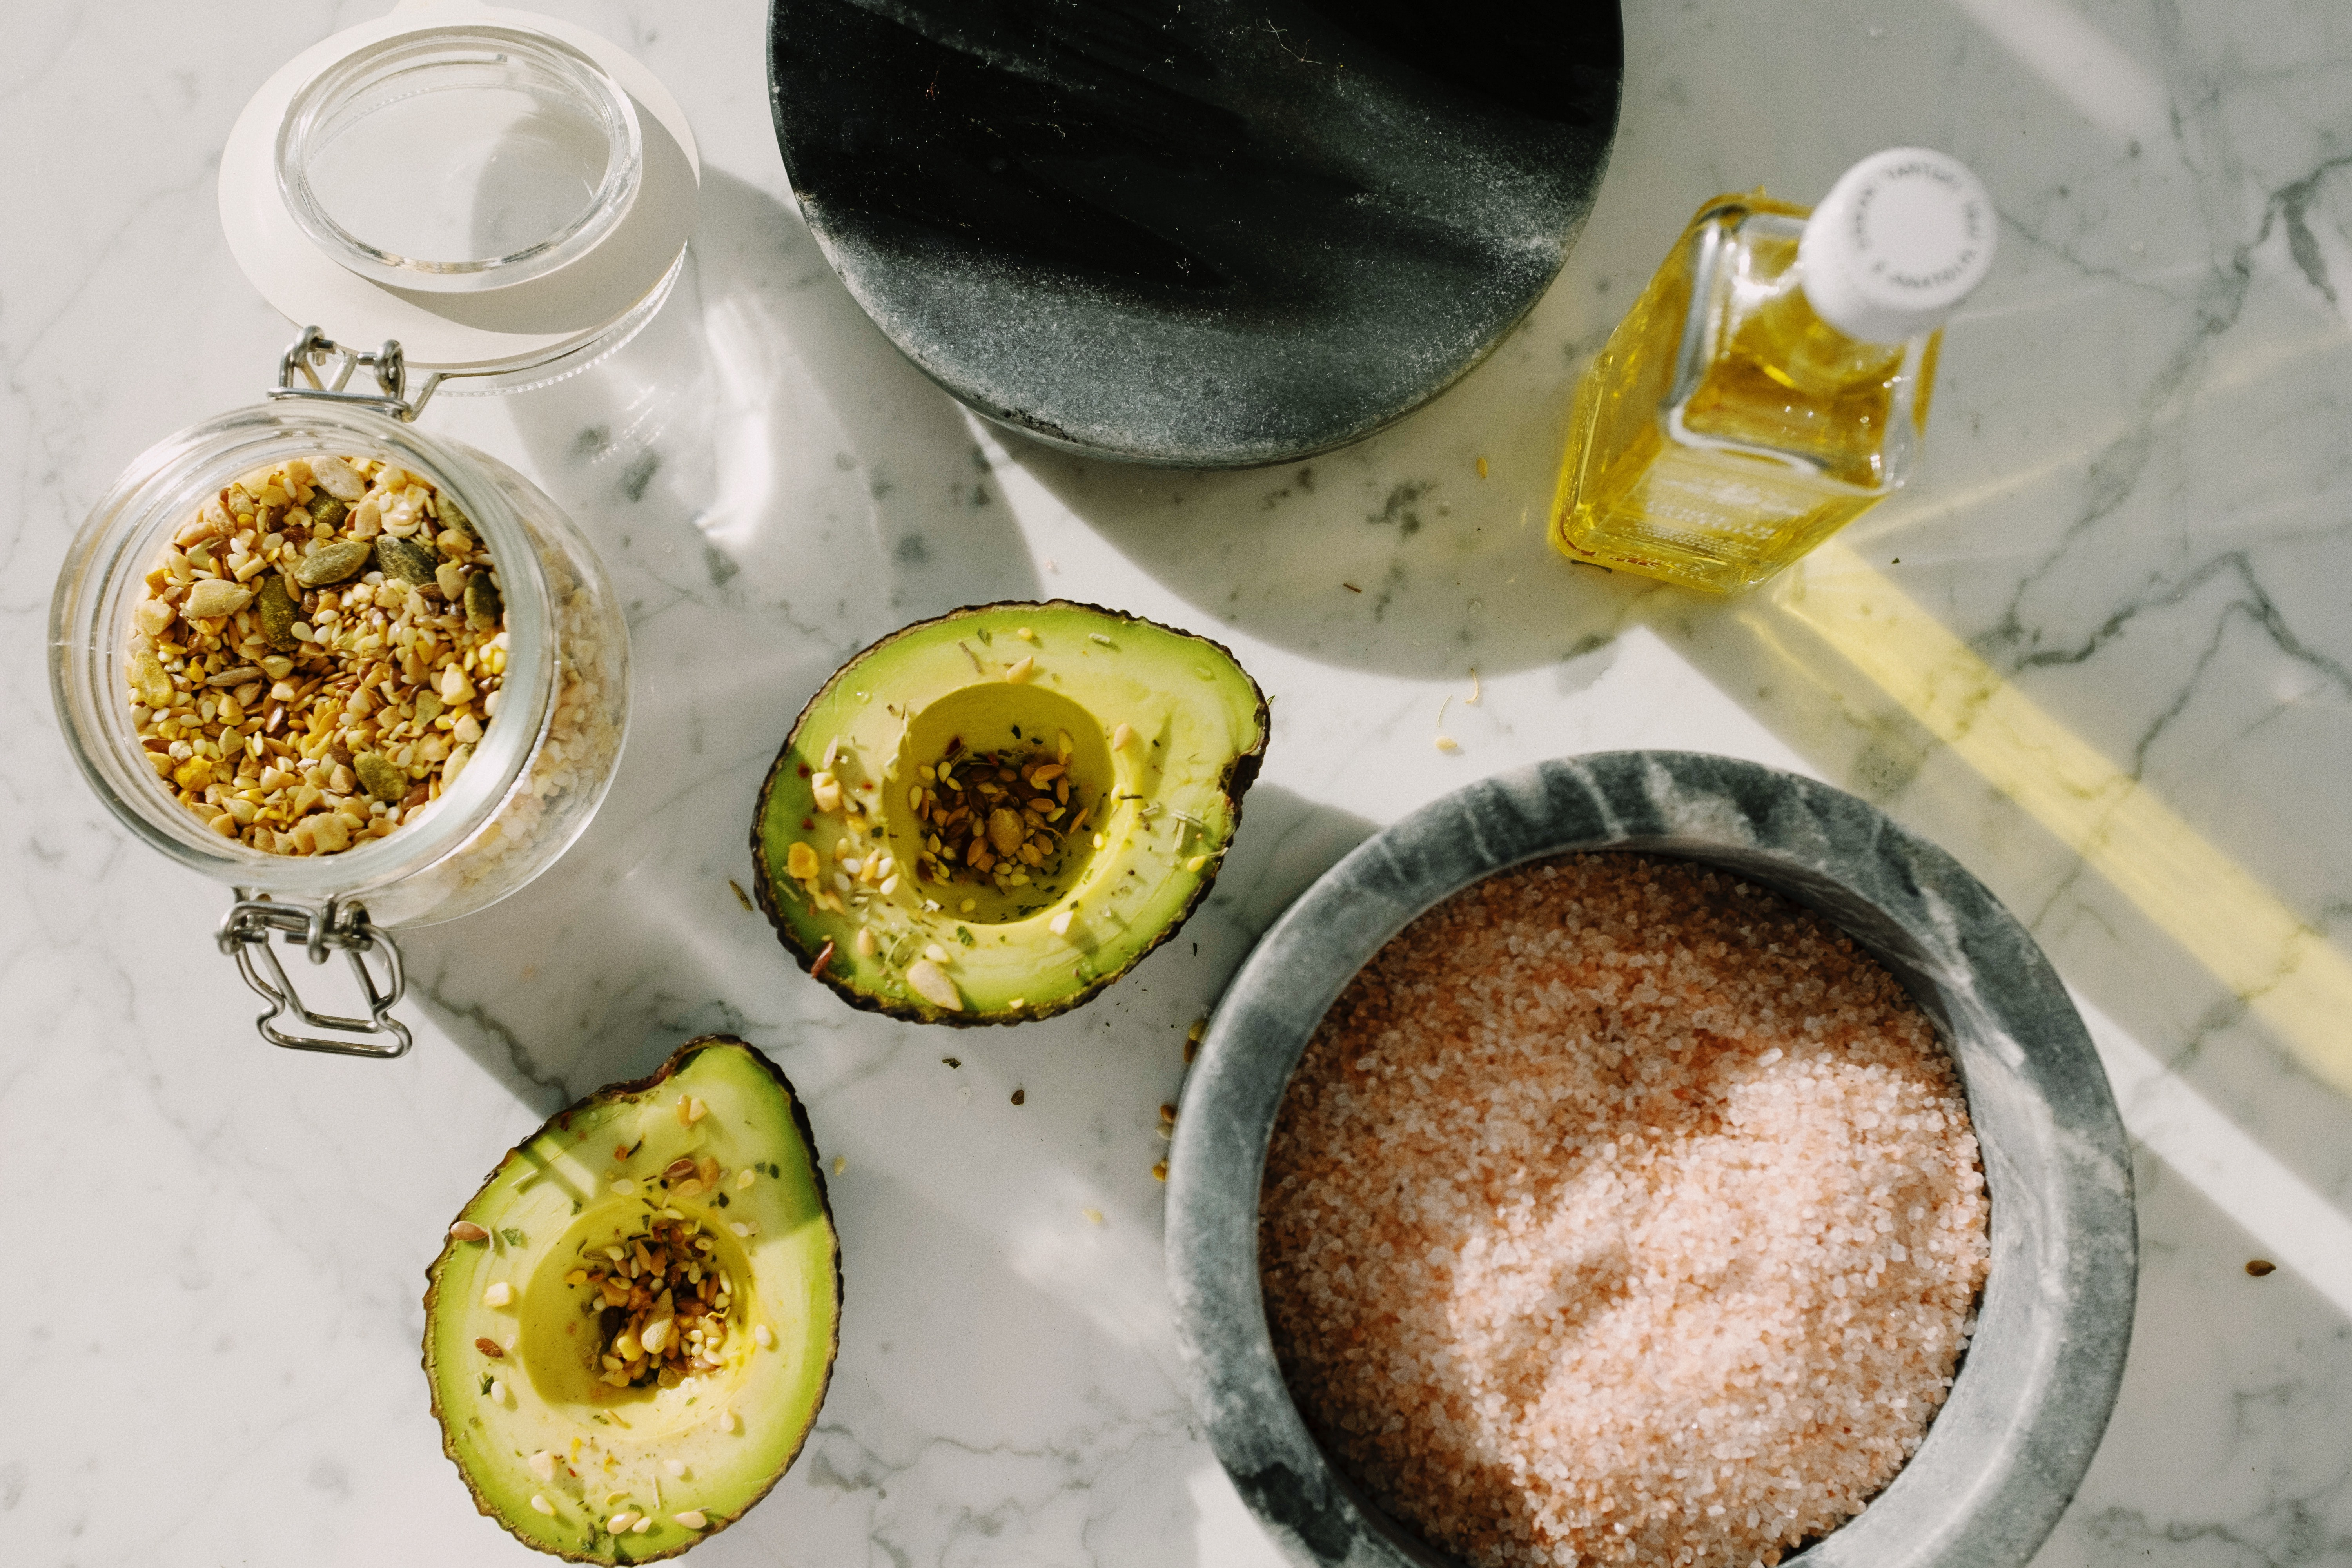 avocados are among the best foods with omega-9